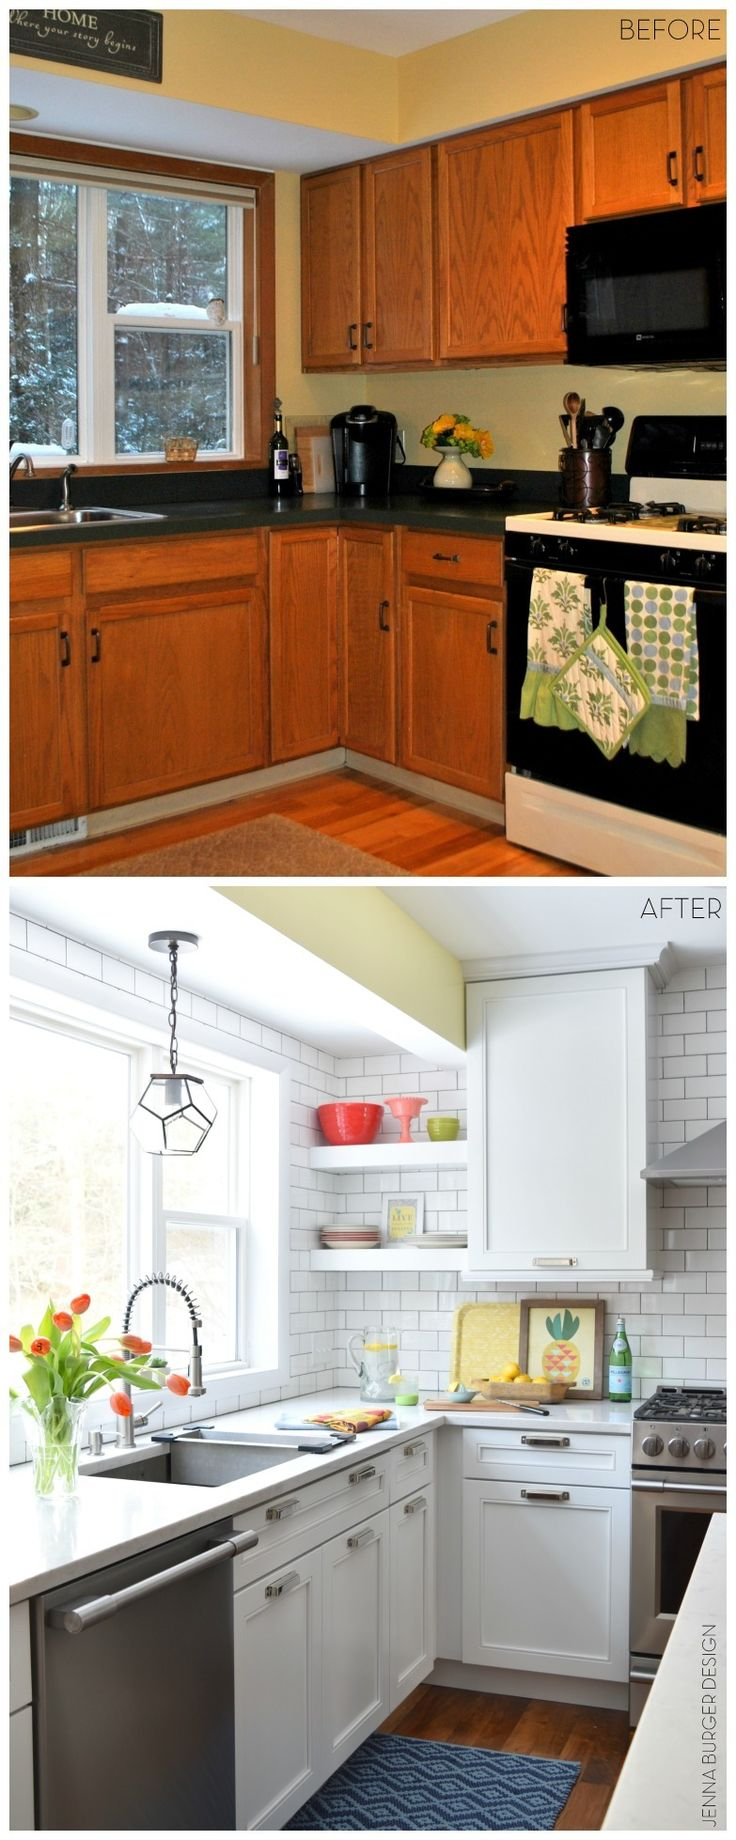 The kitchen has been completely renovated with fresh white cabinets - The Kitchen Has Been Completely Renovated With Fresh White Cabinets Kitchen Makeover Reveal Before And Download